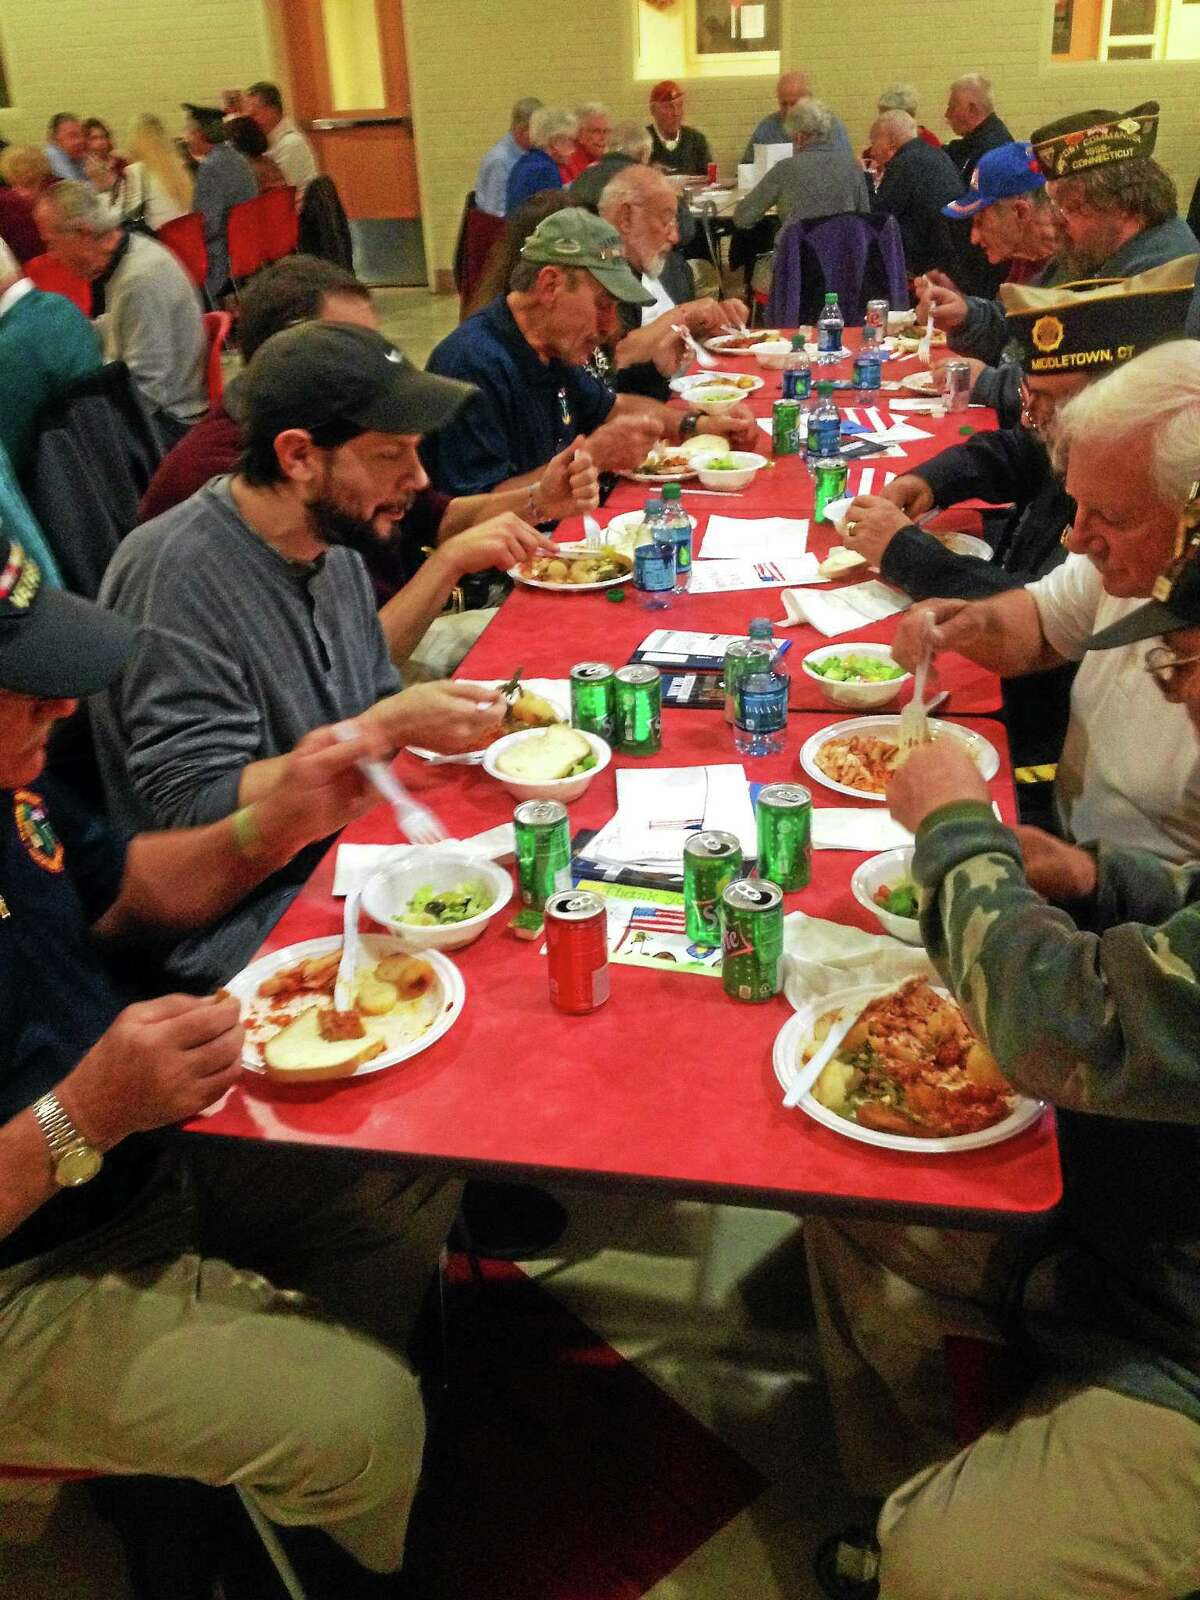 For the sixth year in a row, the Portland Veterans Day dinner fed hundreds of individuals who fought in World War II through Korea to Vietnam through Afghanistan and Iraq. Last year, 240 attended the meal.